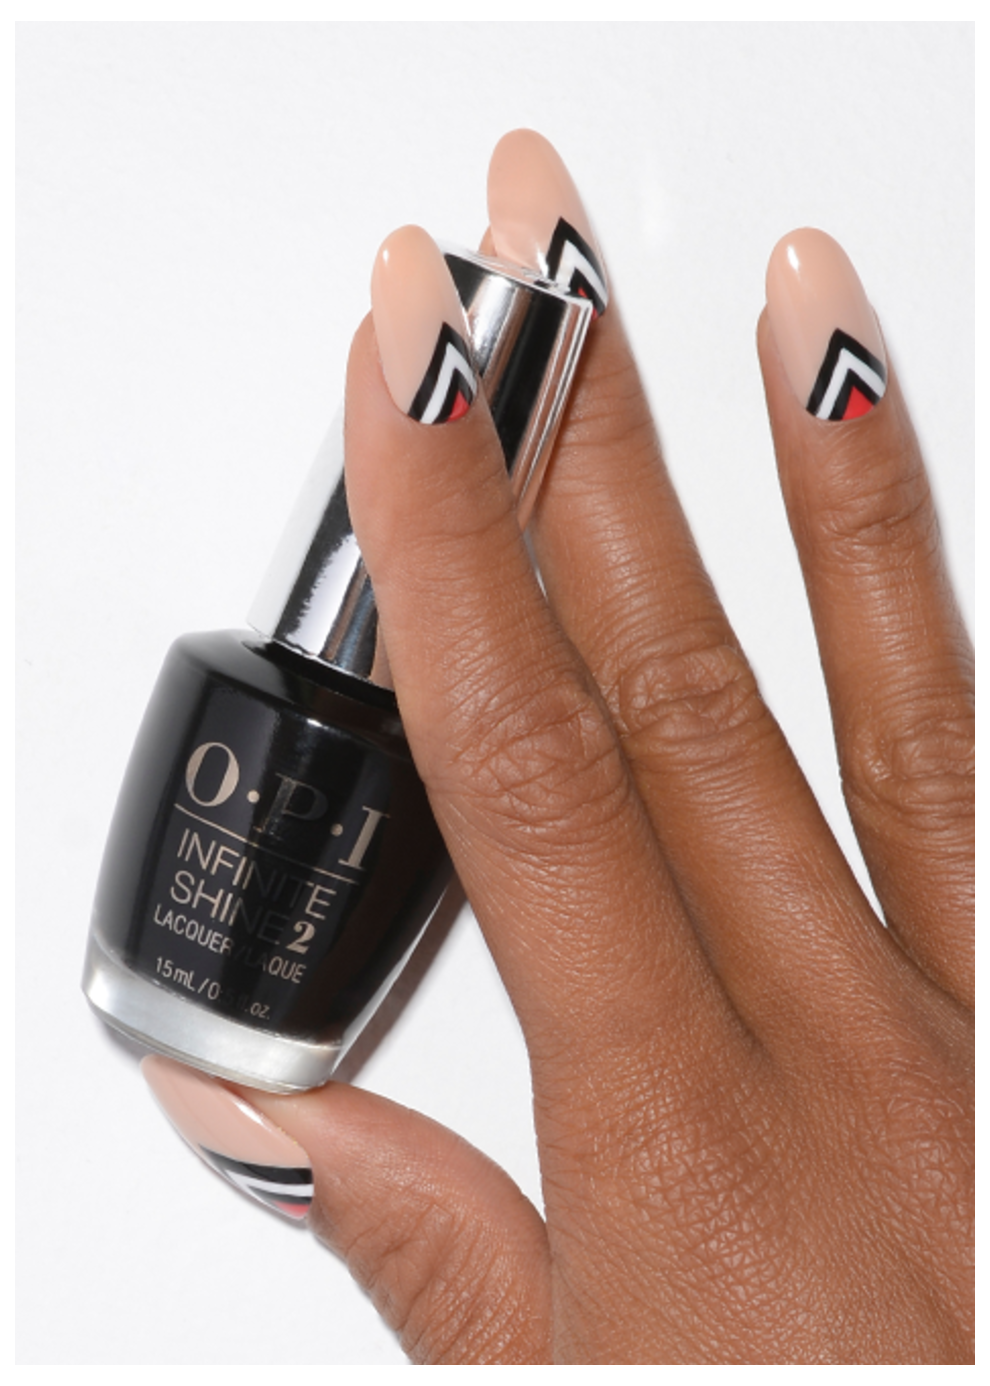 OPI, Featured Nail Artist, nail Art, Infinite Shine, So Nailicious